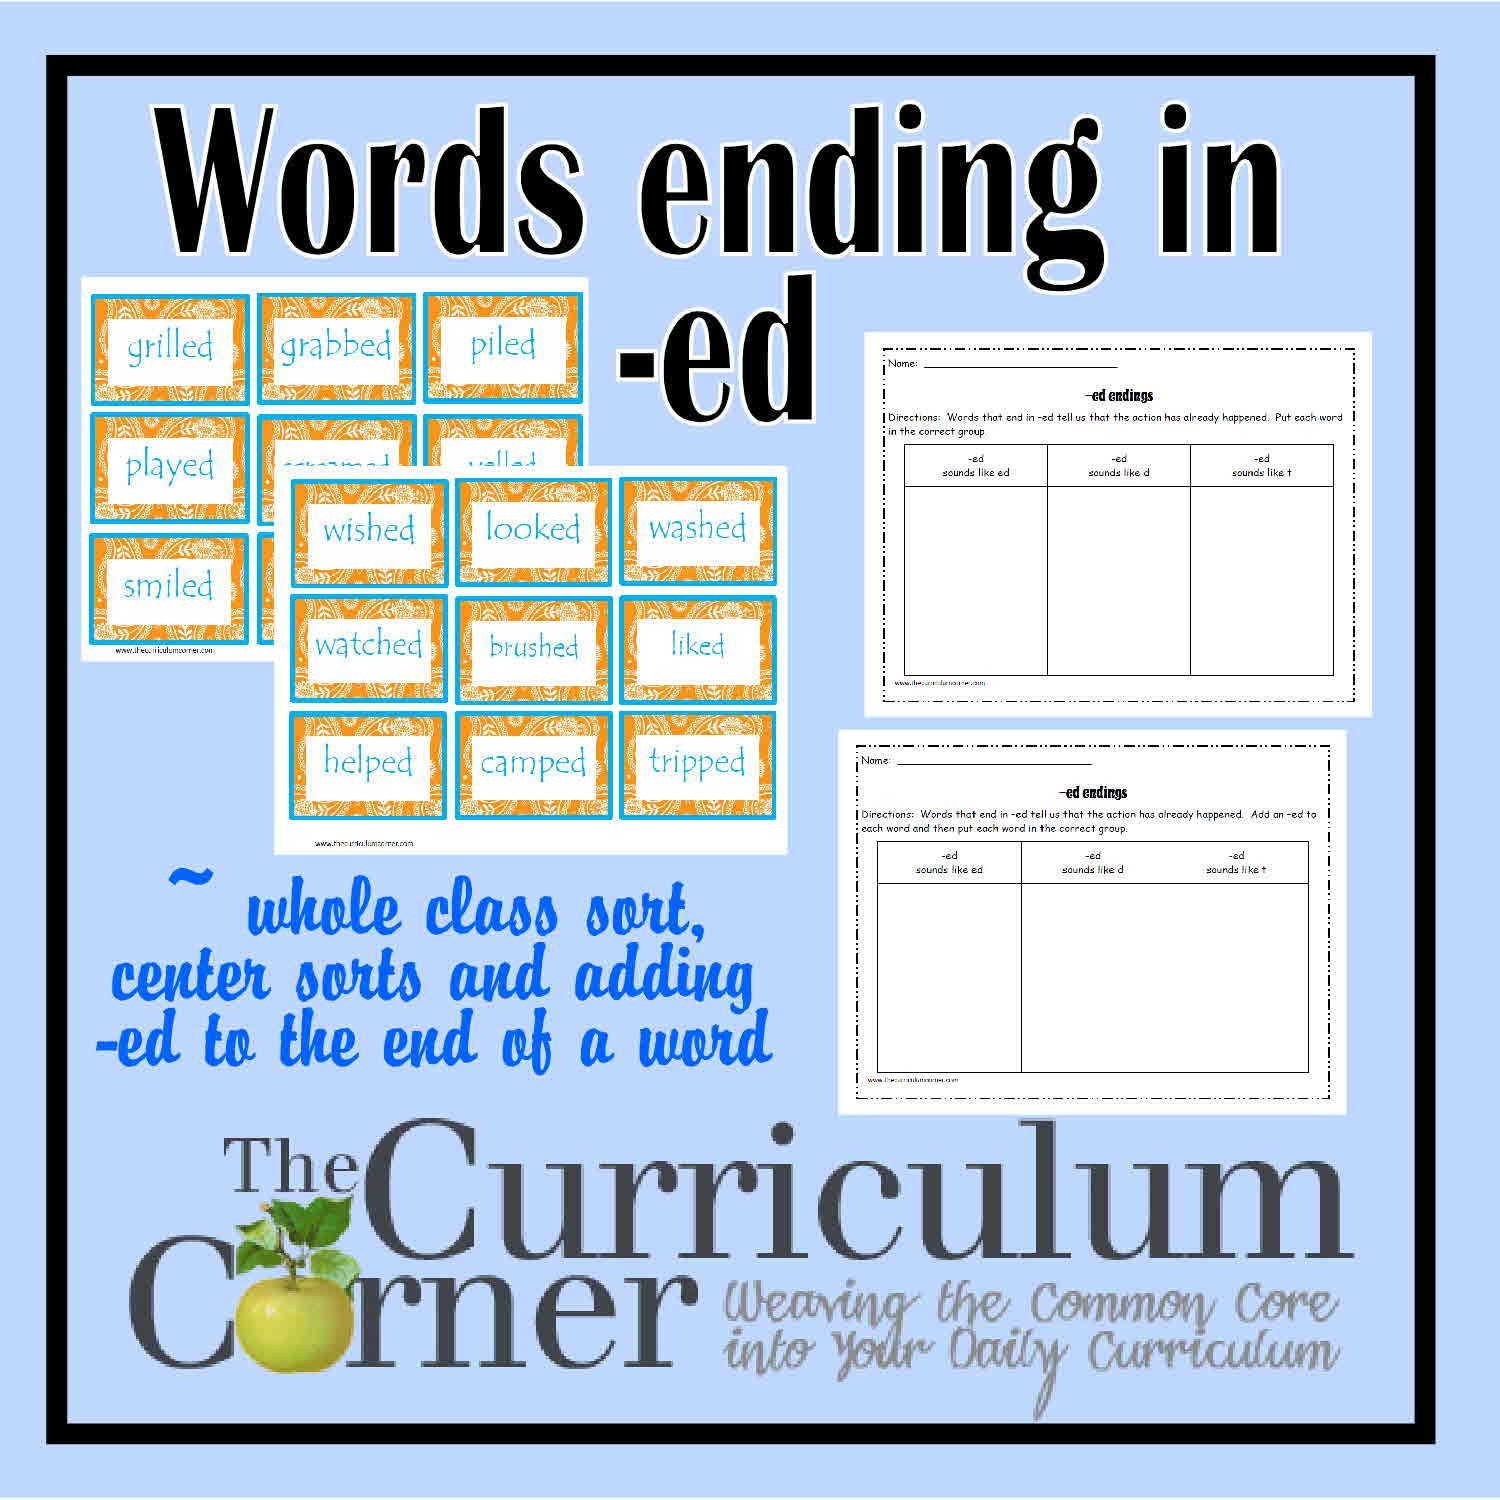 Ed word endings movement activities student reading and activities ed word endings robcynllc Gallery